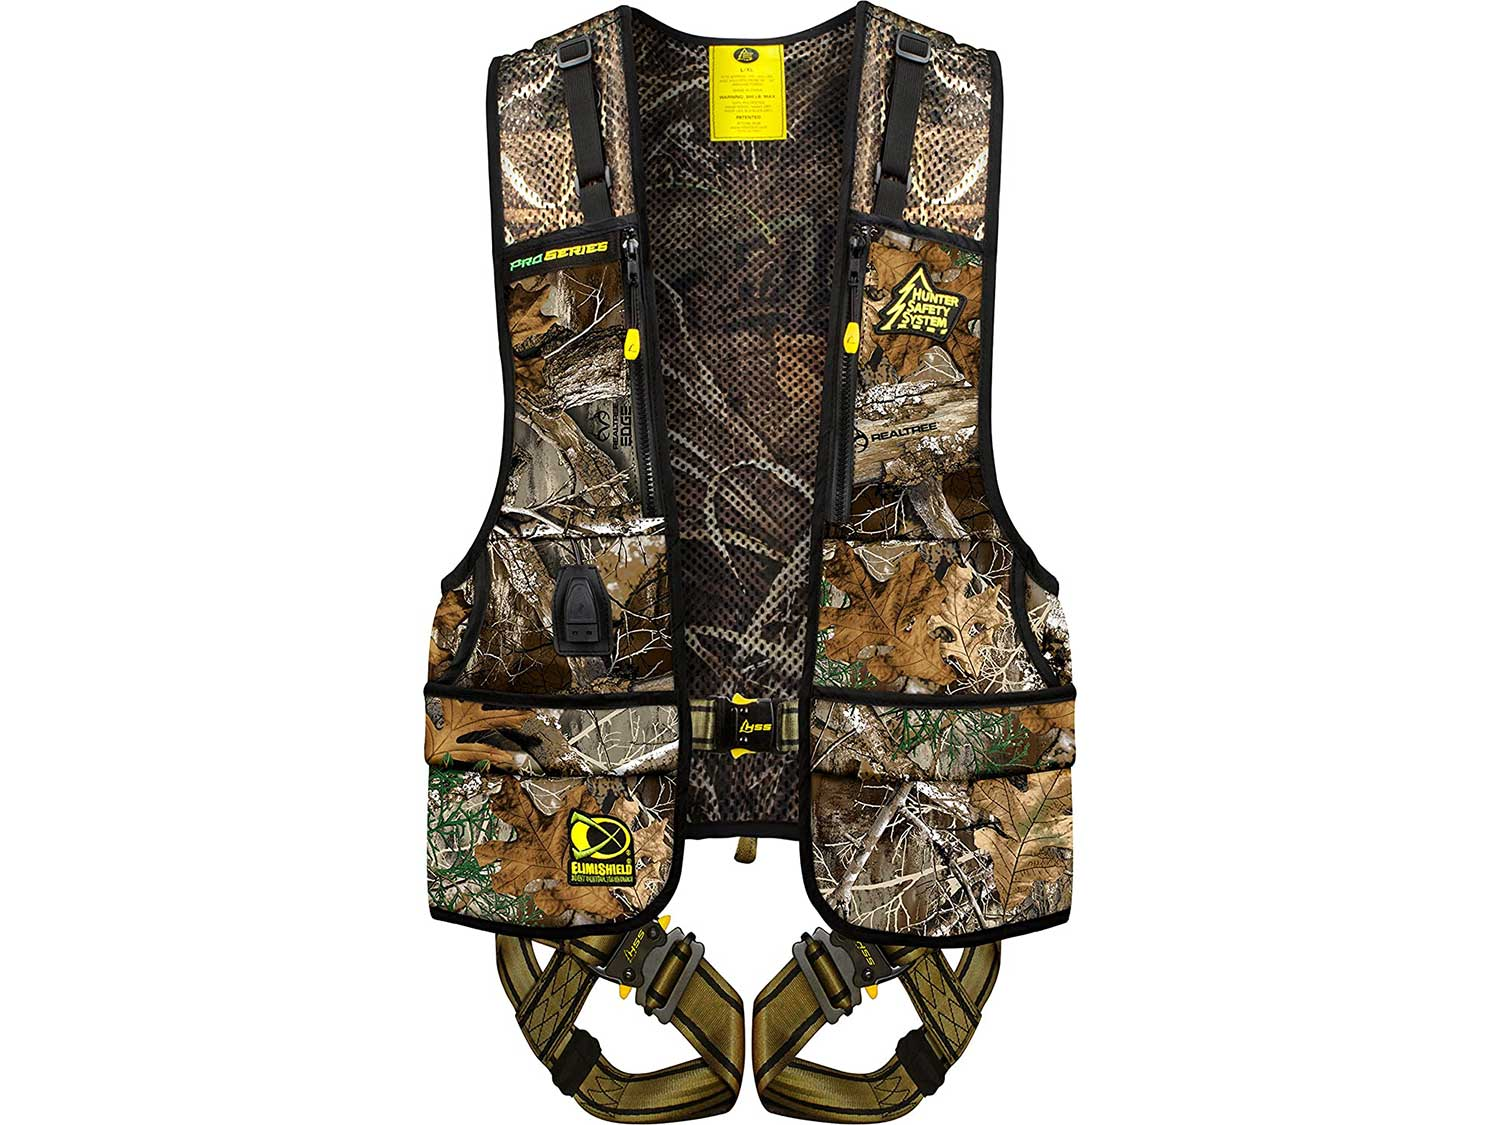 Hunter Safety System Pro-Series Harness with Elimishield Scent Control Technology, Large/X-Large